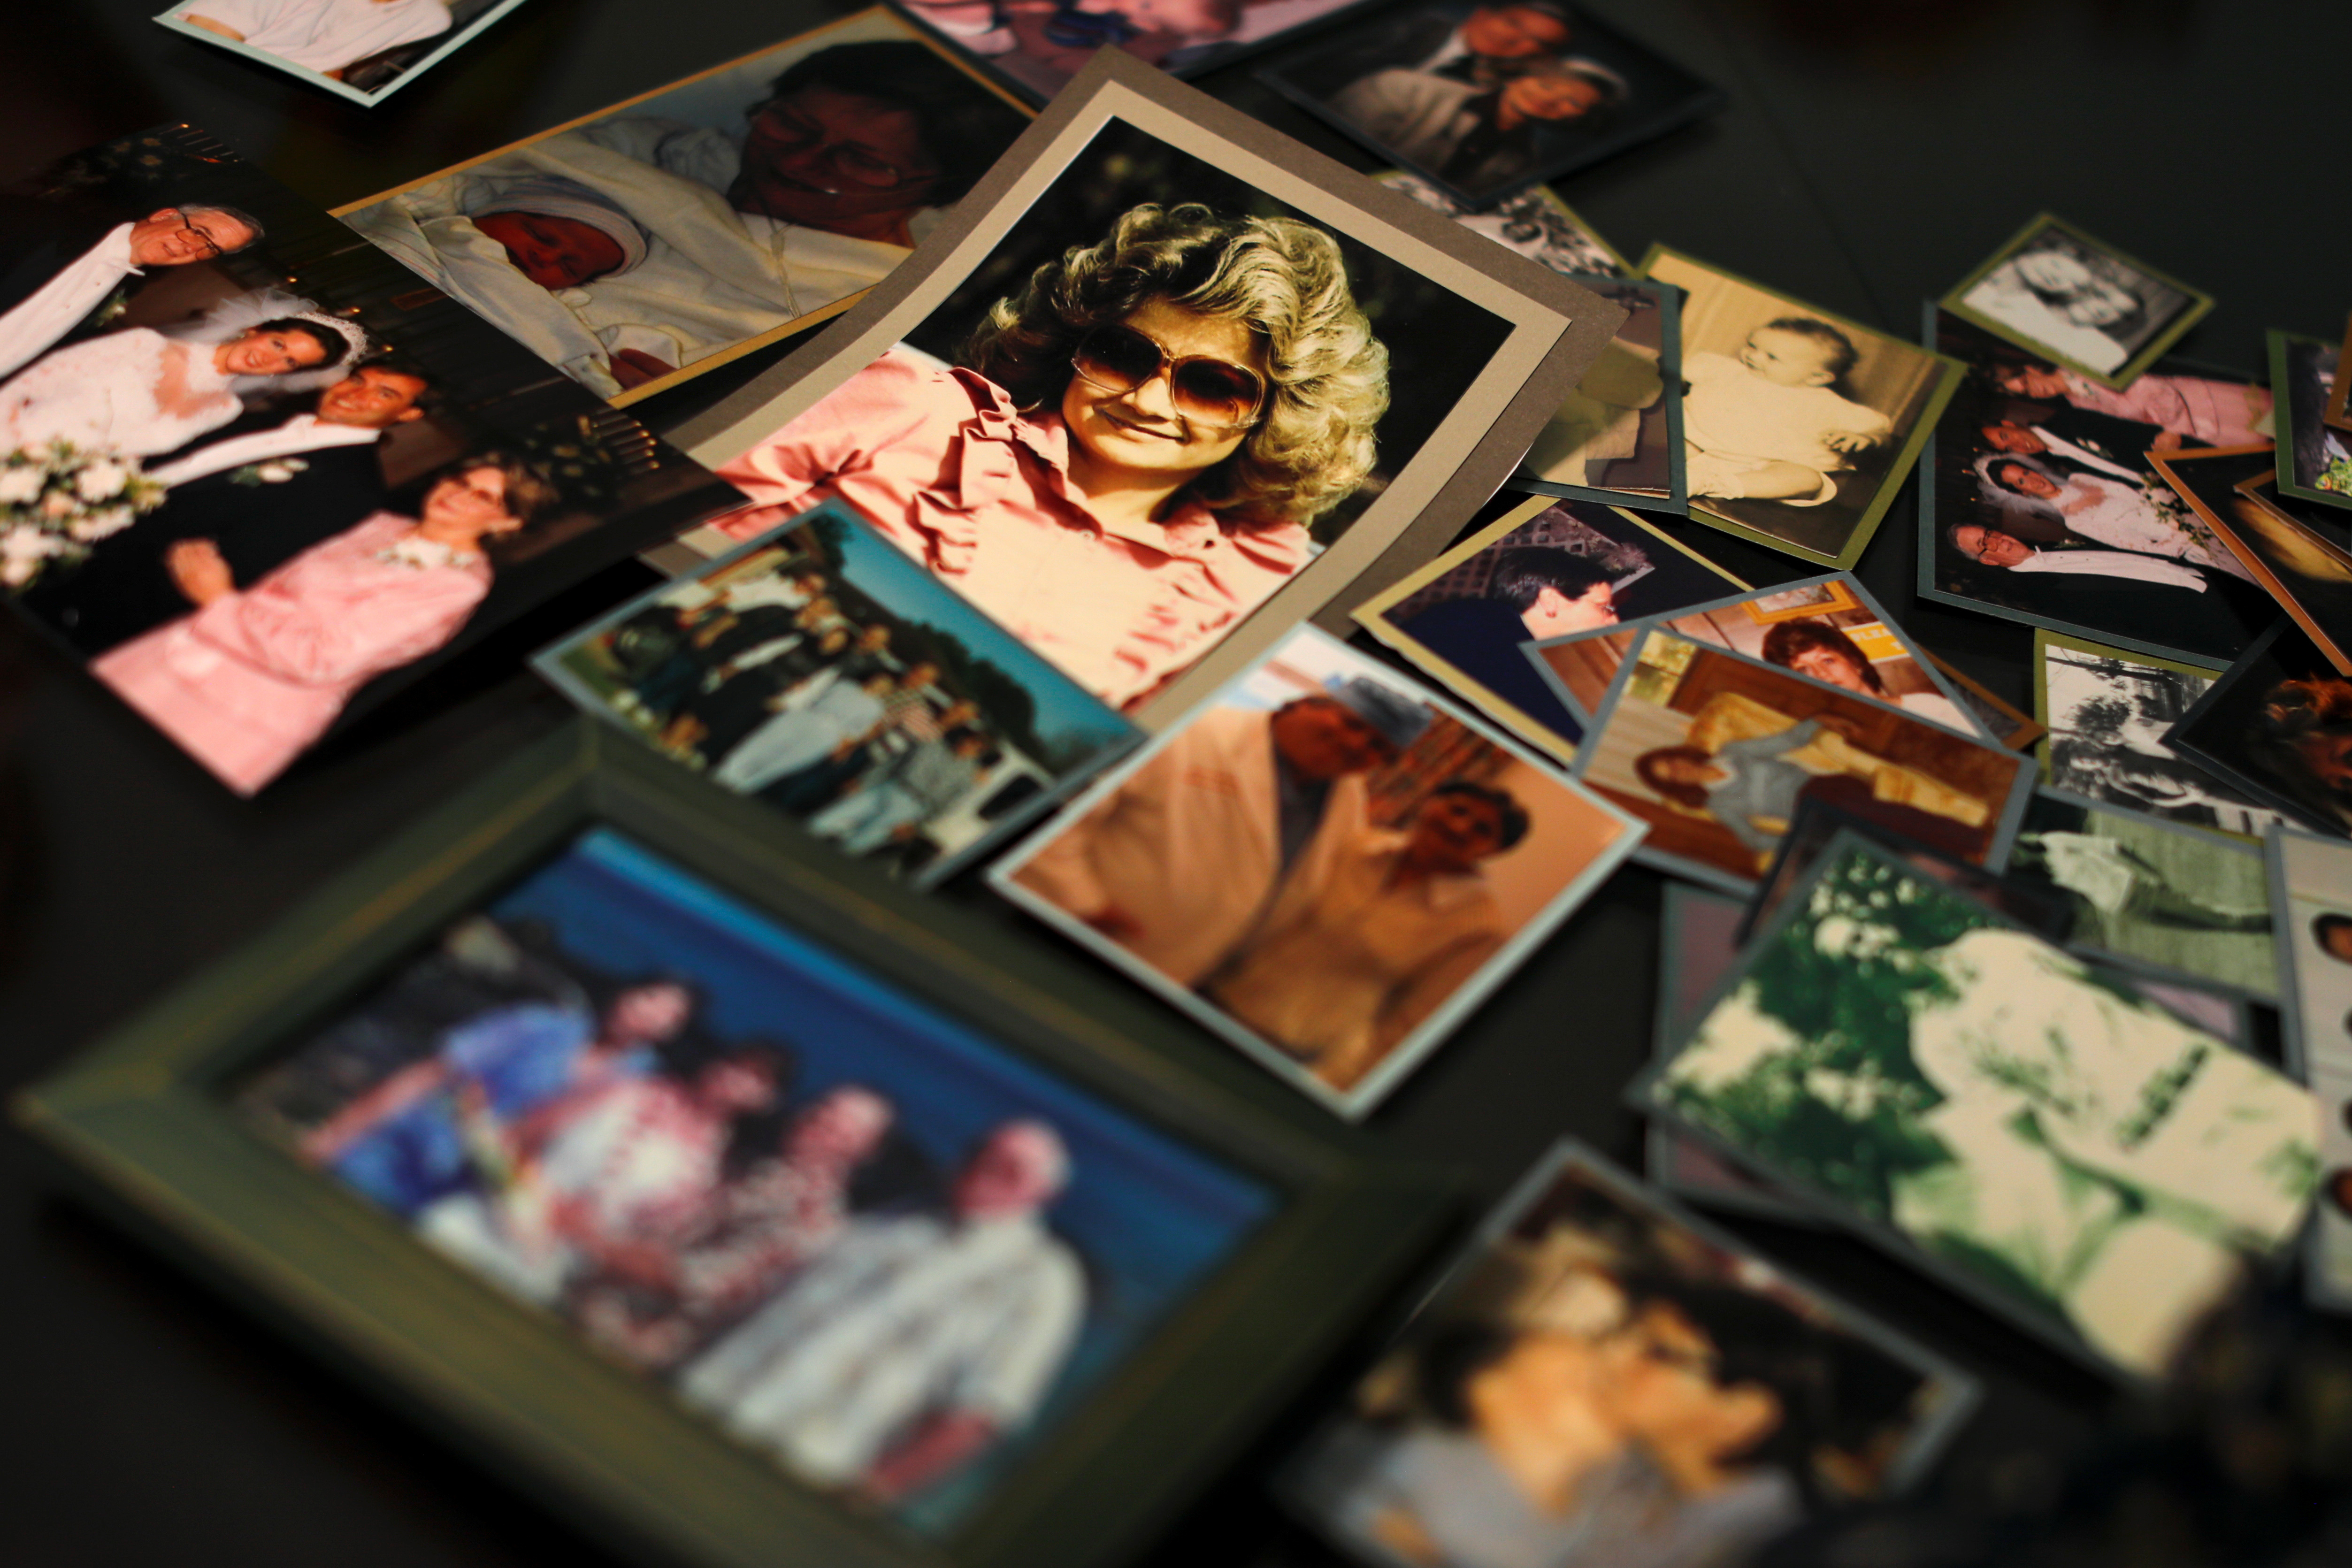 Darlene Coker is shown on a kitchen table full of many personal pictures of her family life in California, U.S. August 15, 2018. Picture taken August 15, 2018. REUTERS/Mike Blake